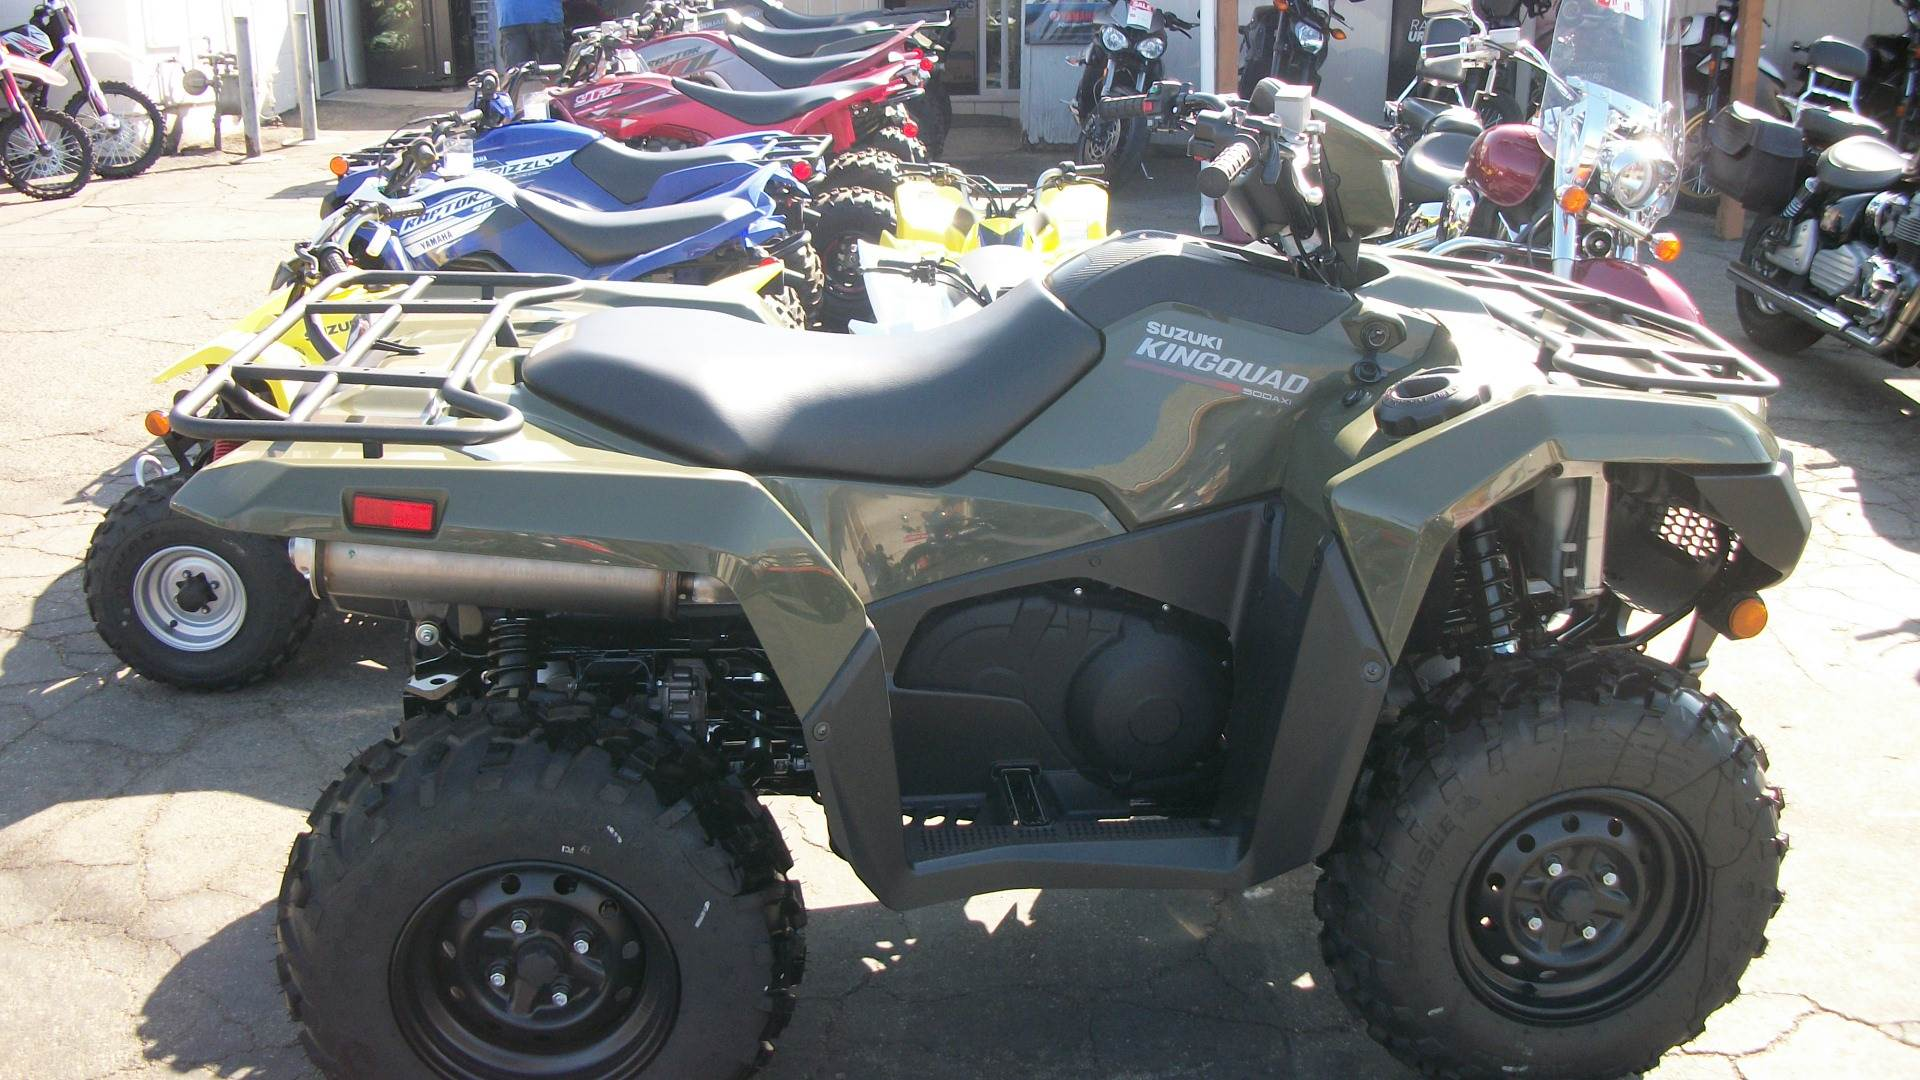 2019 Suzuki KingQuad 500AXi in Simi Valley, California - Photo 1